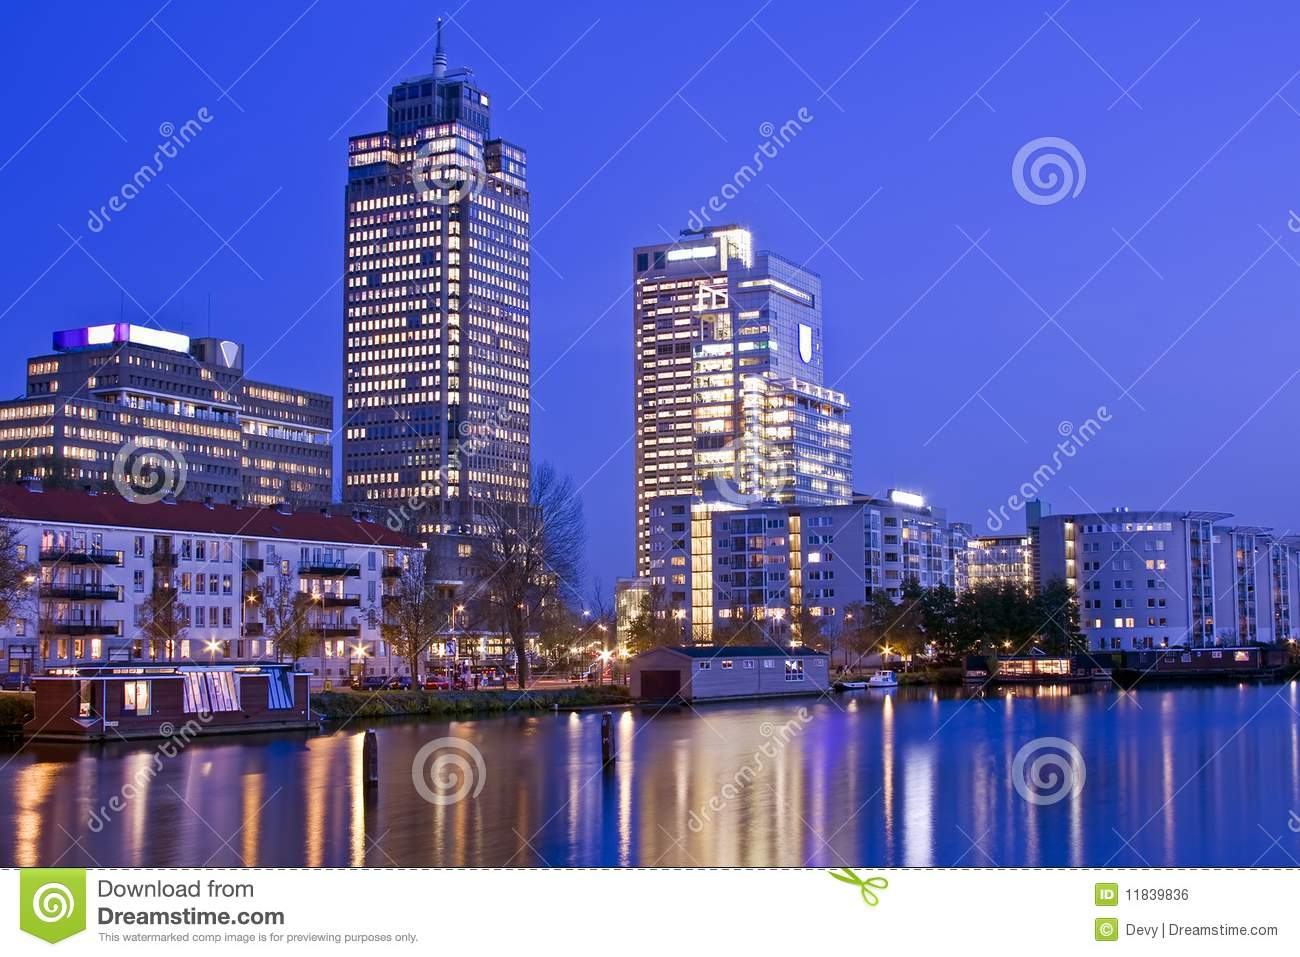 Amsterdam Skyline Amsterdam Skyline In The Netherlands Stock Photo Image